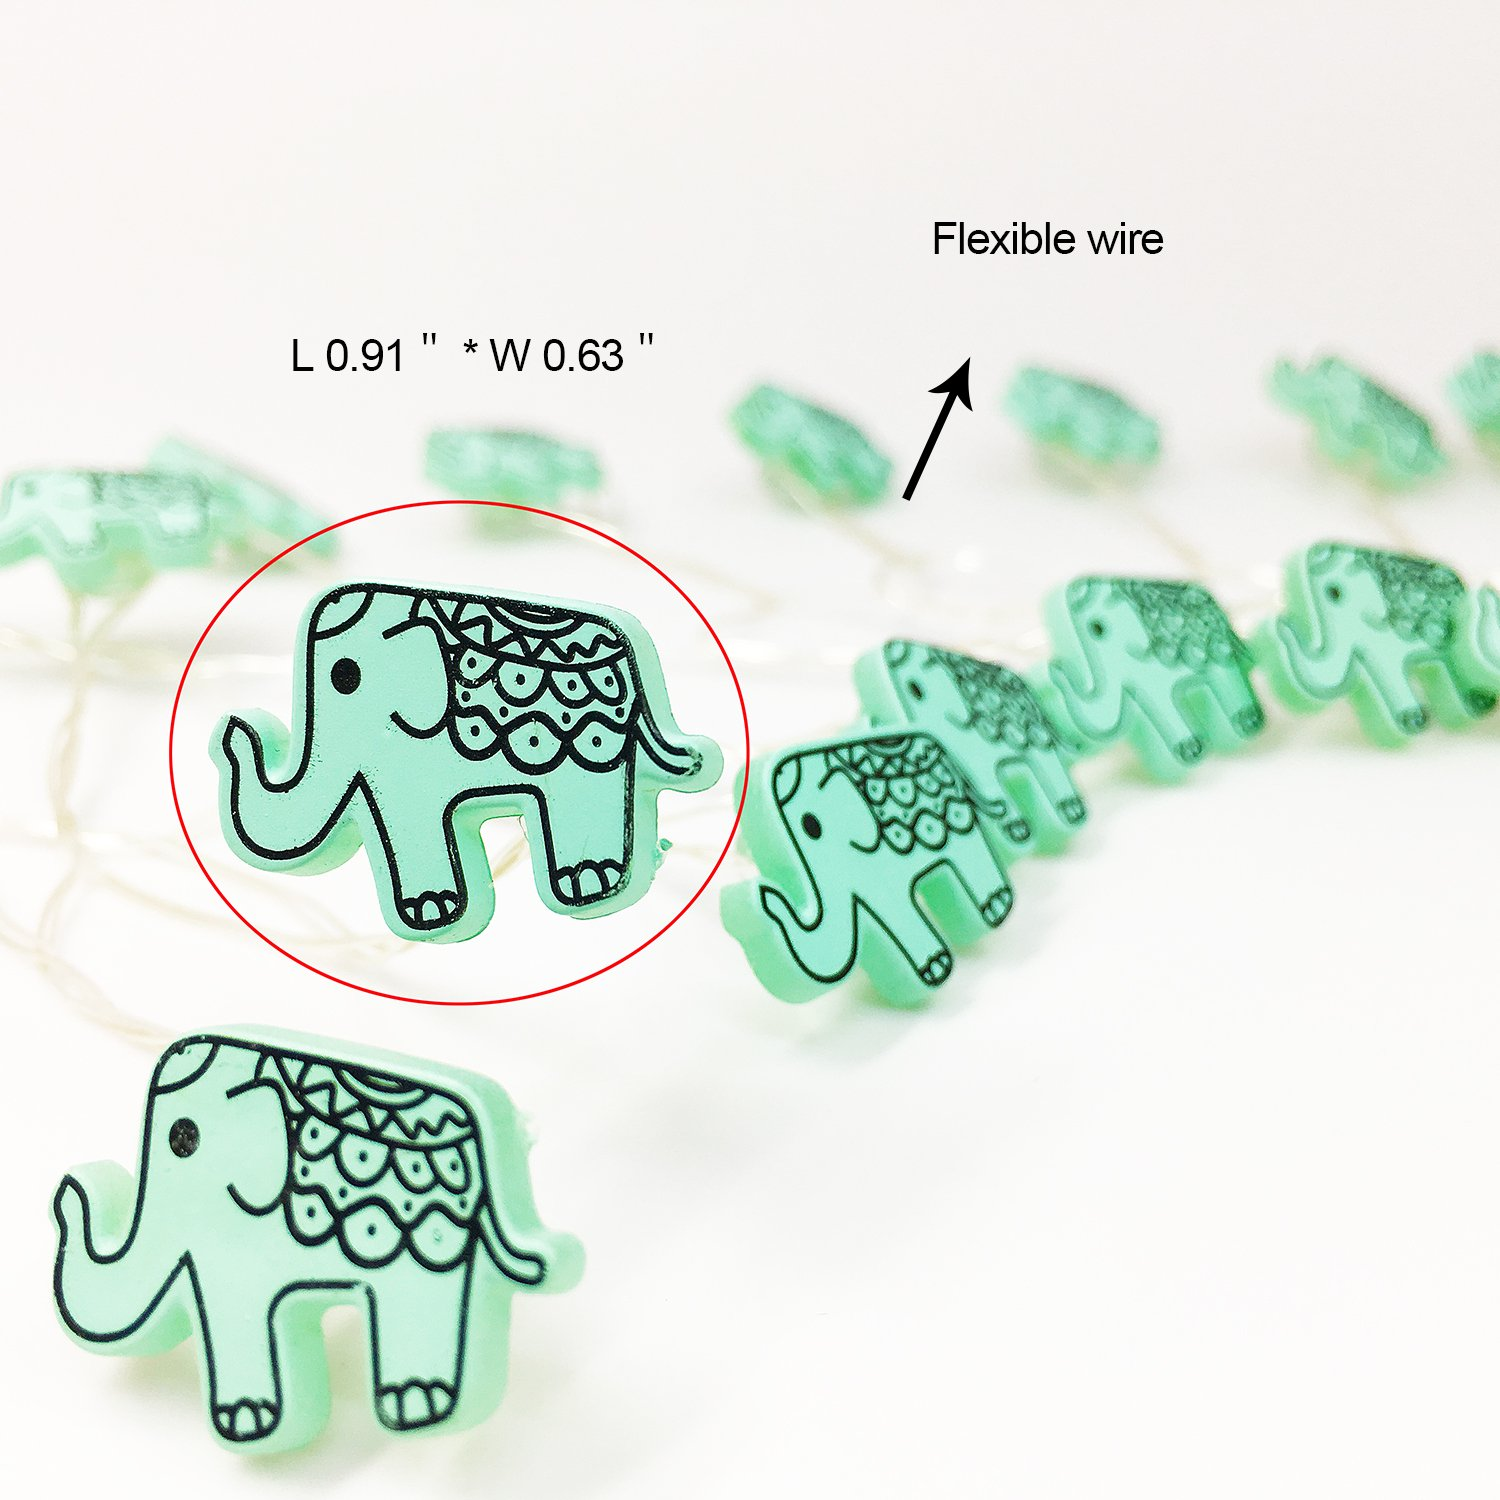 Animal Novelty Lights String Battery Operated with Timer Control 20 Micro LED Wire Lights Waterproof 2 Pack Elephant String Lights for Home Decoration,Kids Bedroom,Christmas,Holiday,(ELE2) by VagaryLight (Image #3)